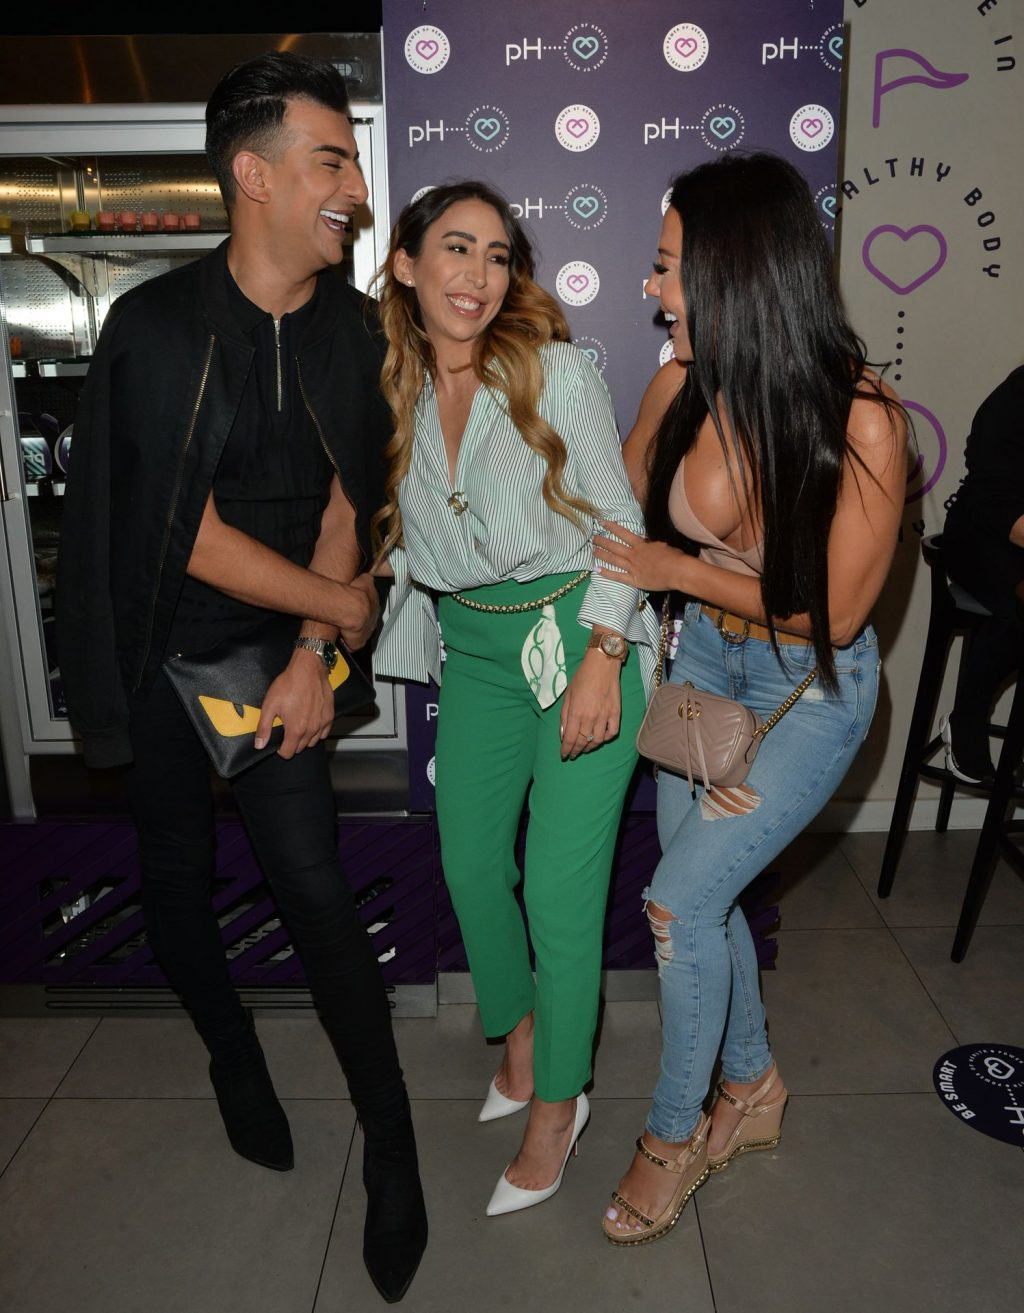 Yazmin Oukhellou Shows Off Her Boobs at Health Cafe (21 Photos)